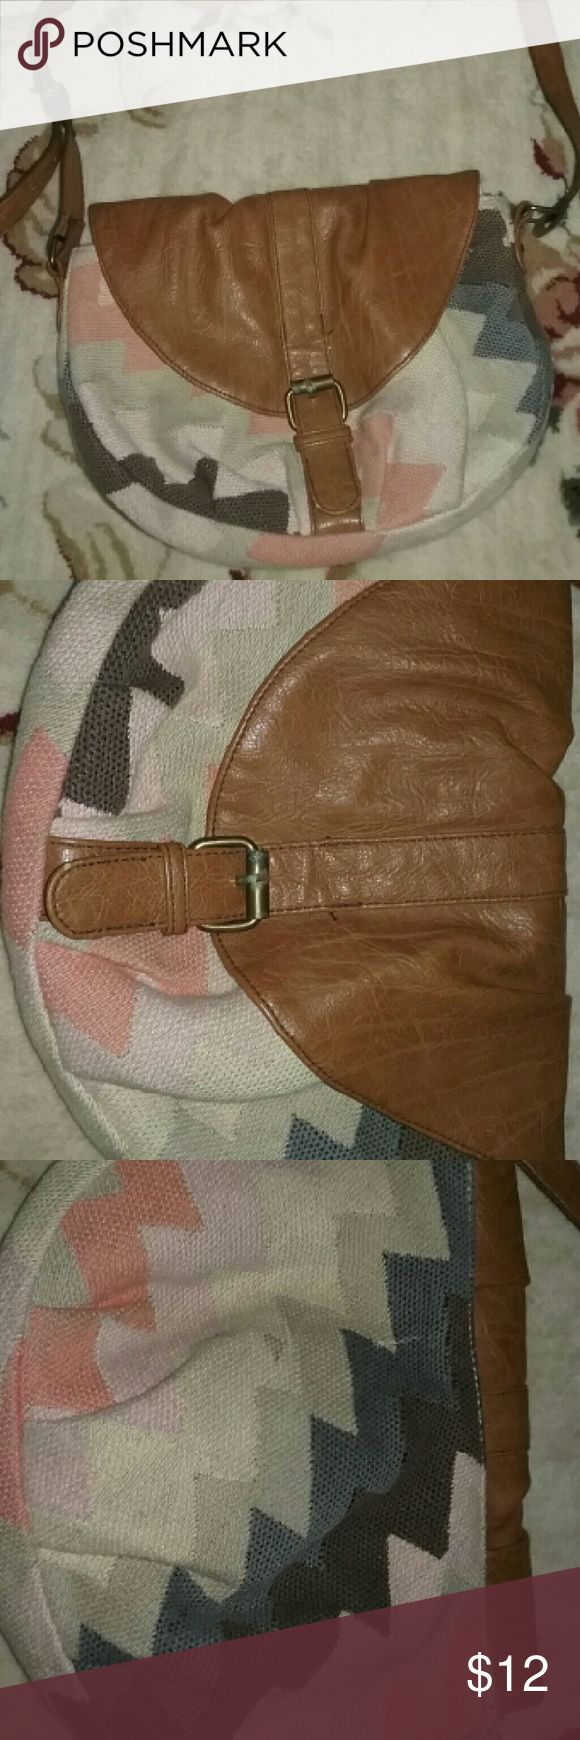 American Eagle Cross body bag Womens cross body bag, used, in great condition. Light weight bag. Bags Crossbody Bags